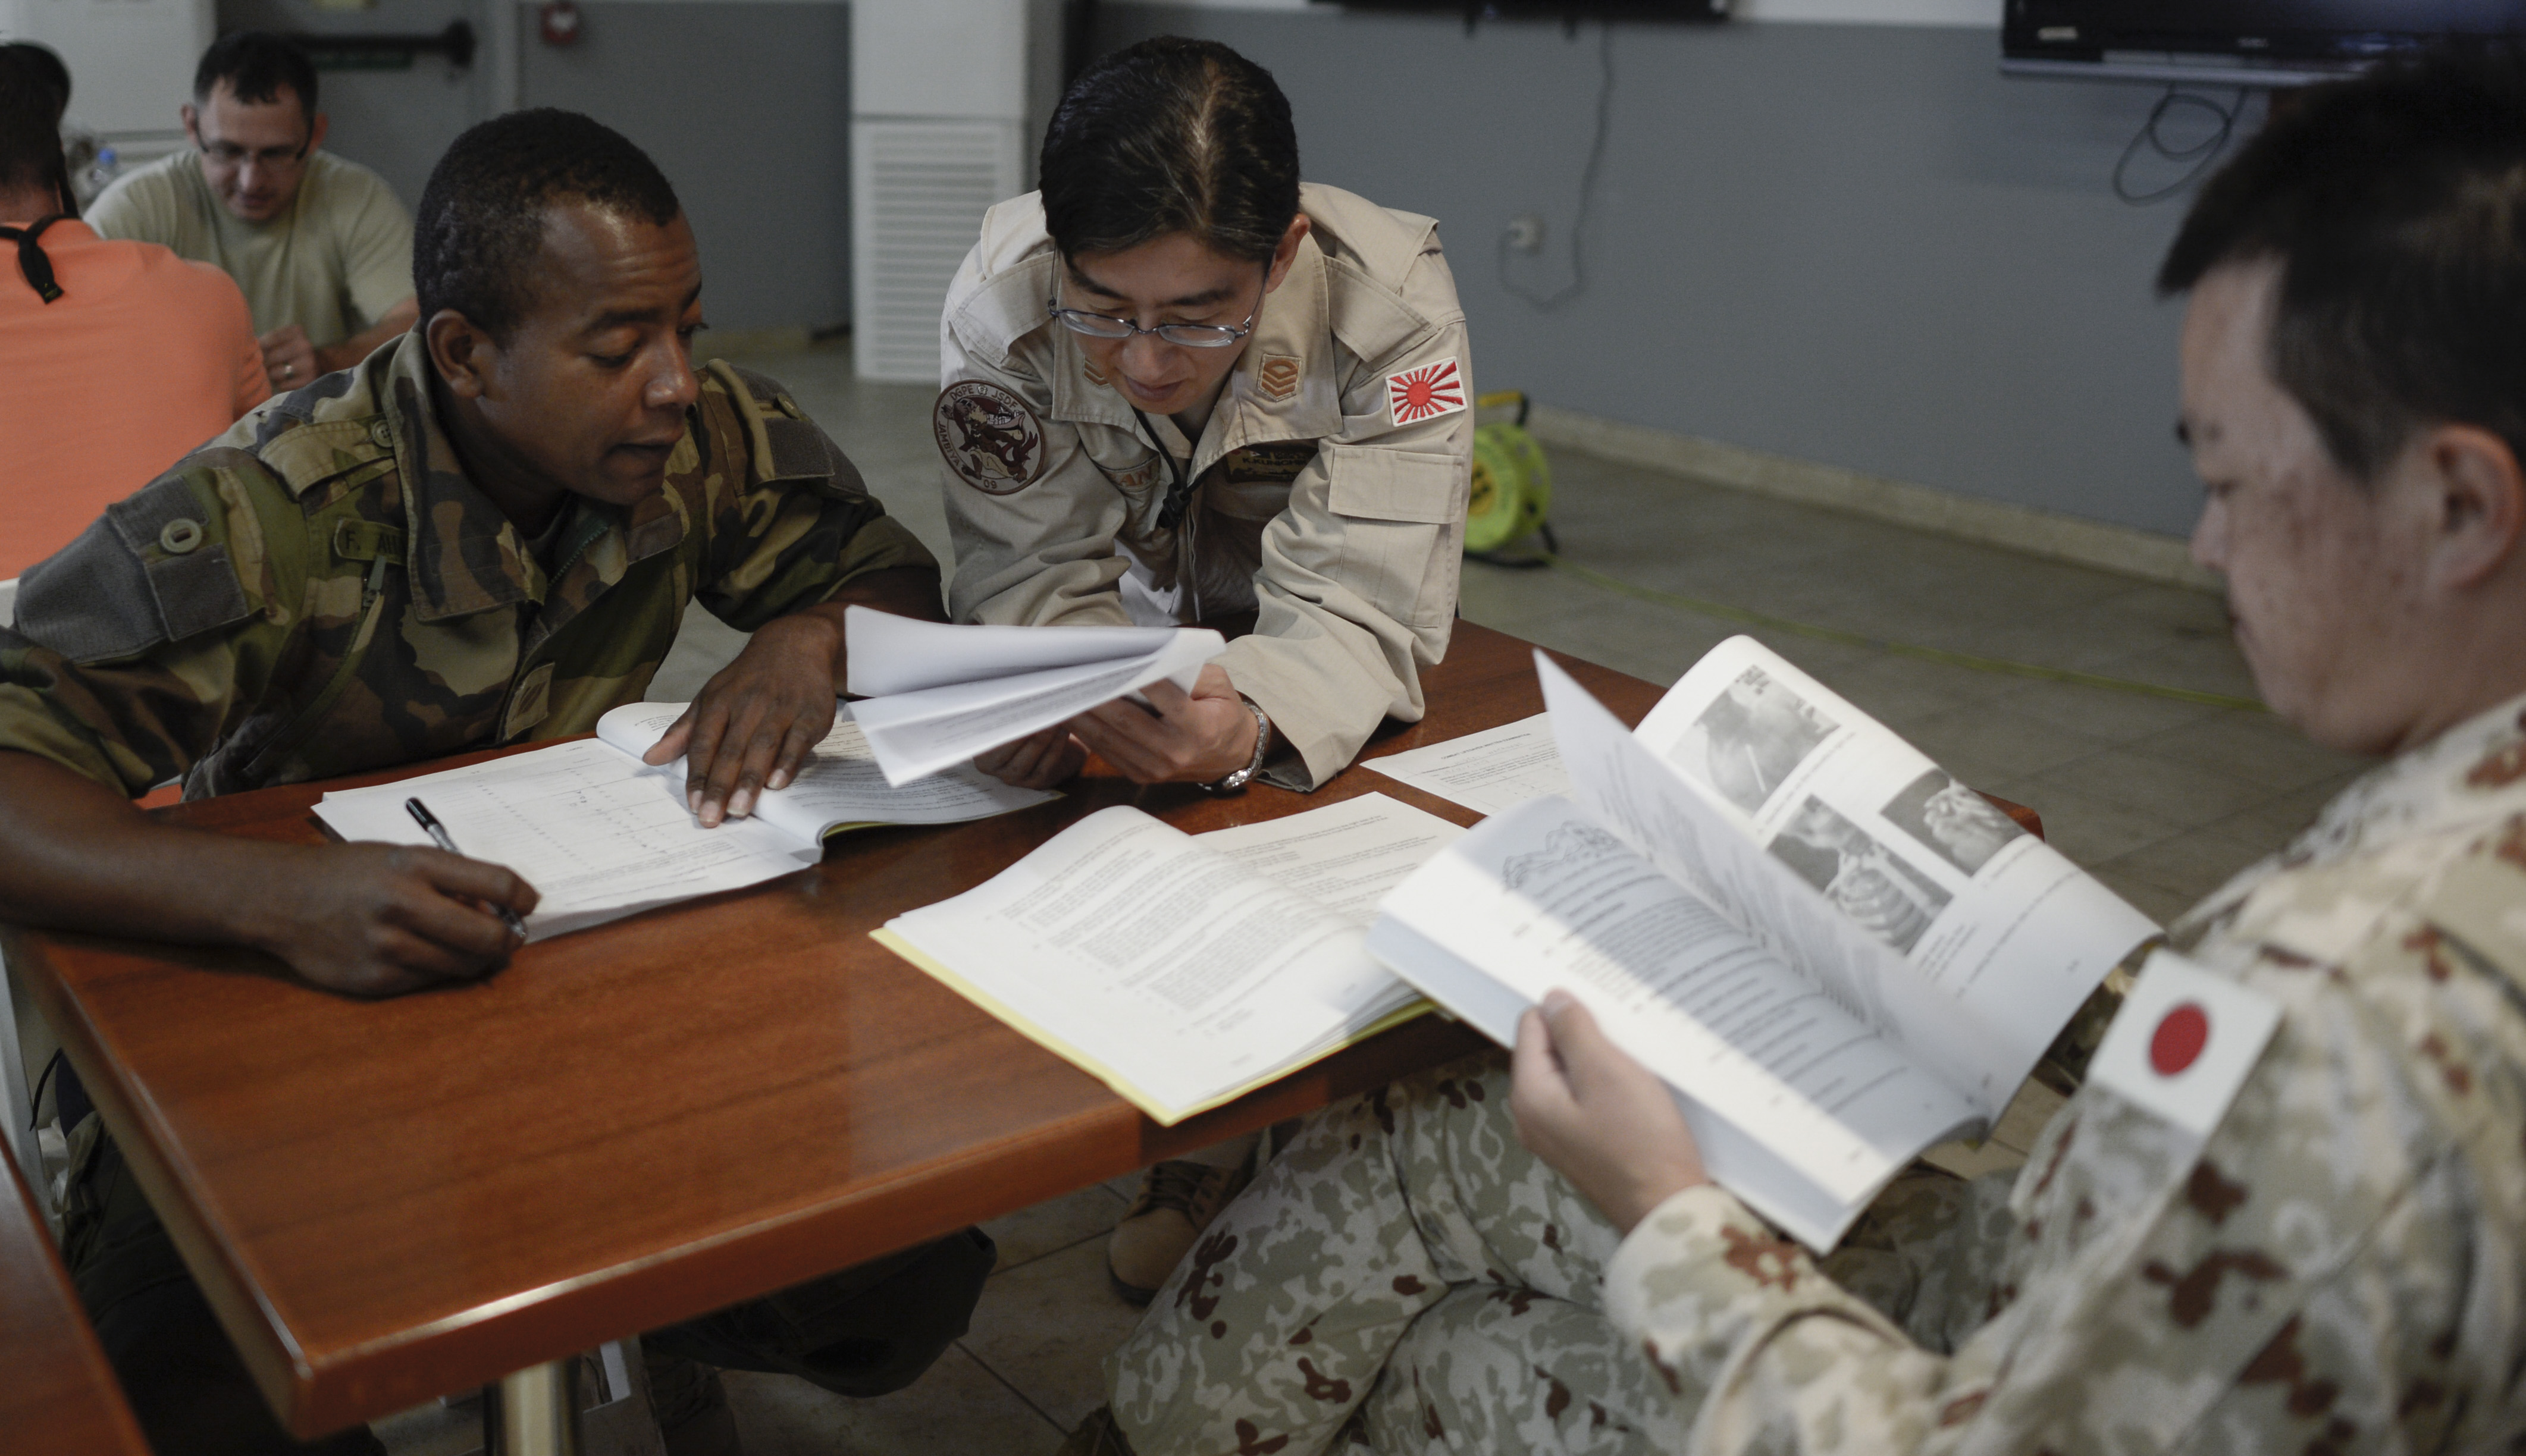 Students from U.S. partner nations take a written examination during the Combat Lifesavers Course (CLC) at Camp Lemonnier, Djibouti, Jan. 19, 2017. A properly trained combat lifesaver is capable of stabilizing many types of casualties and can slow the deterioration of a wounded service member's condition until medical personnel arrive.